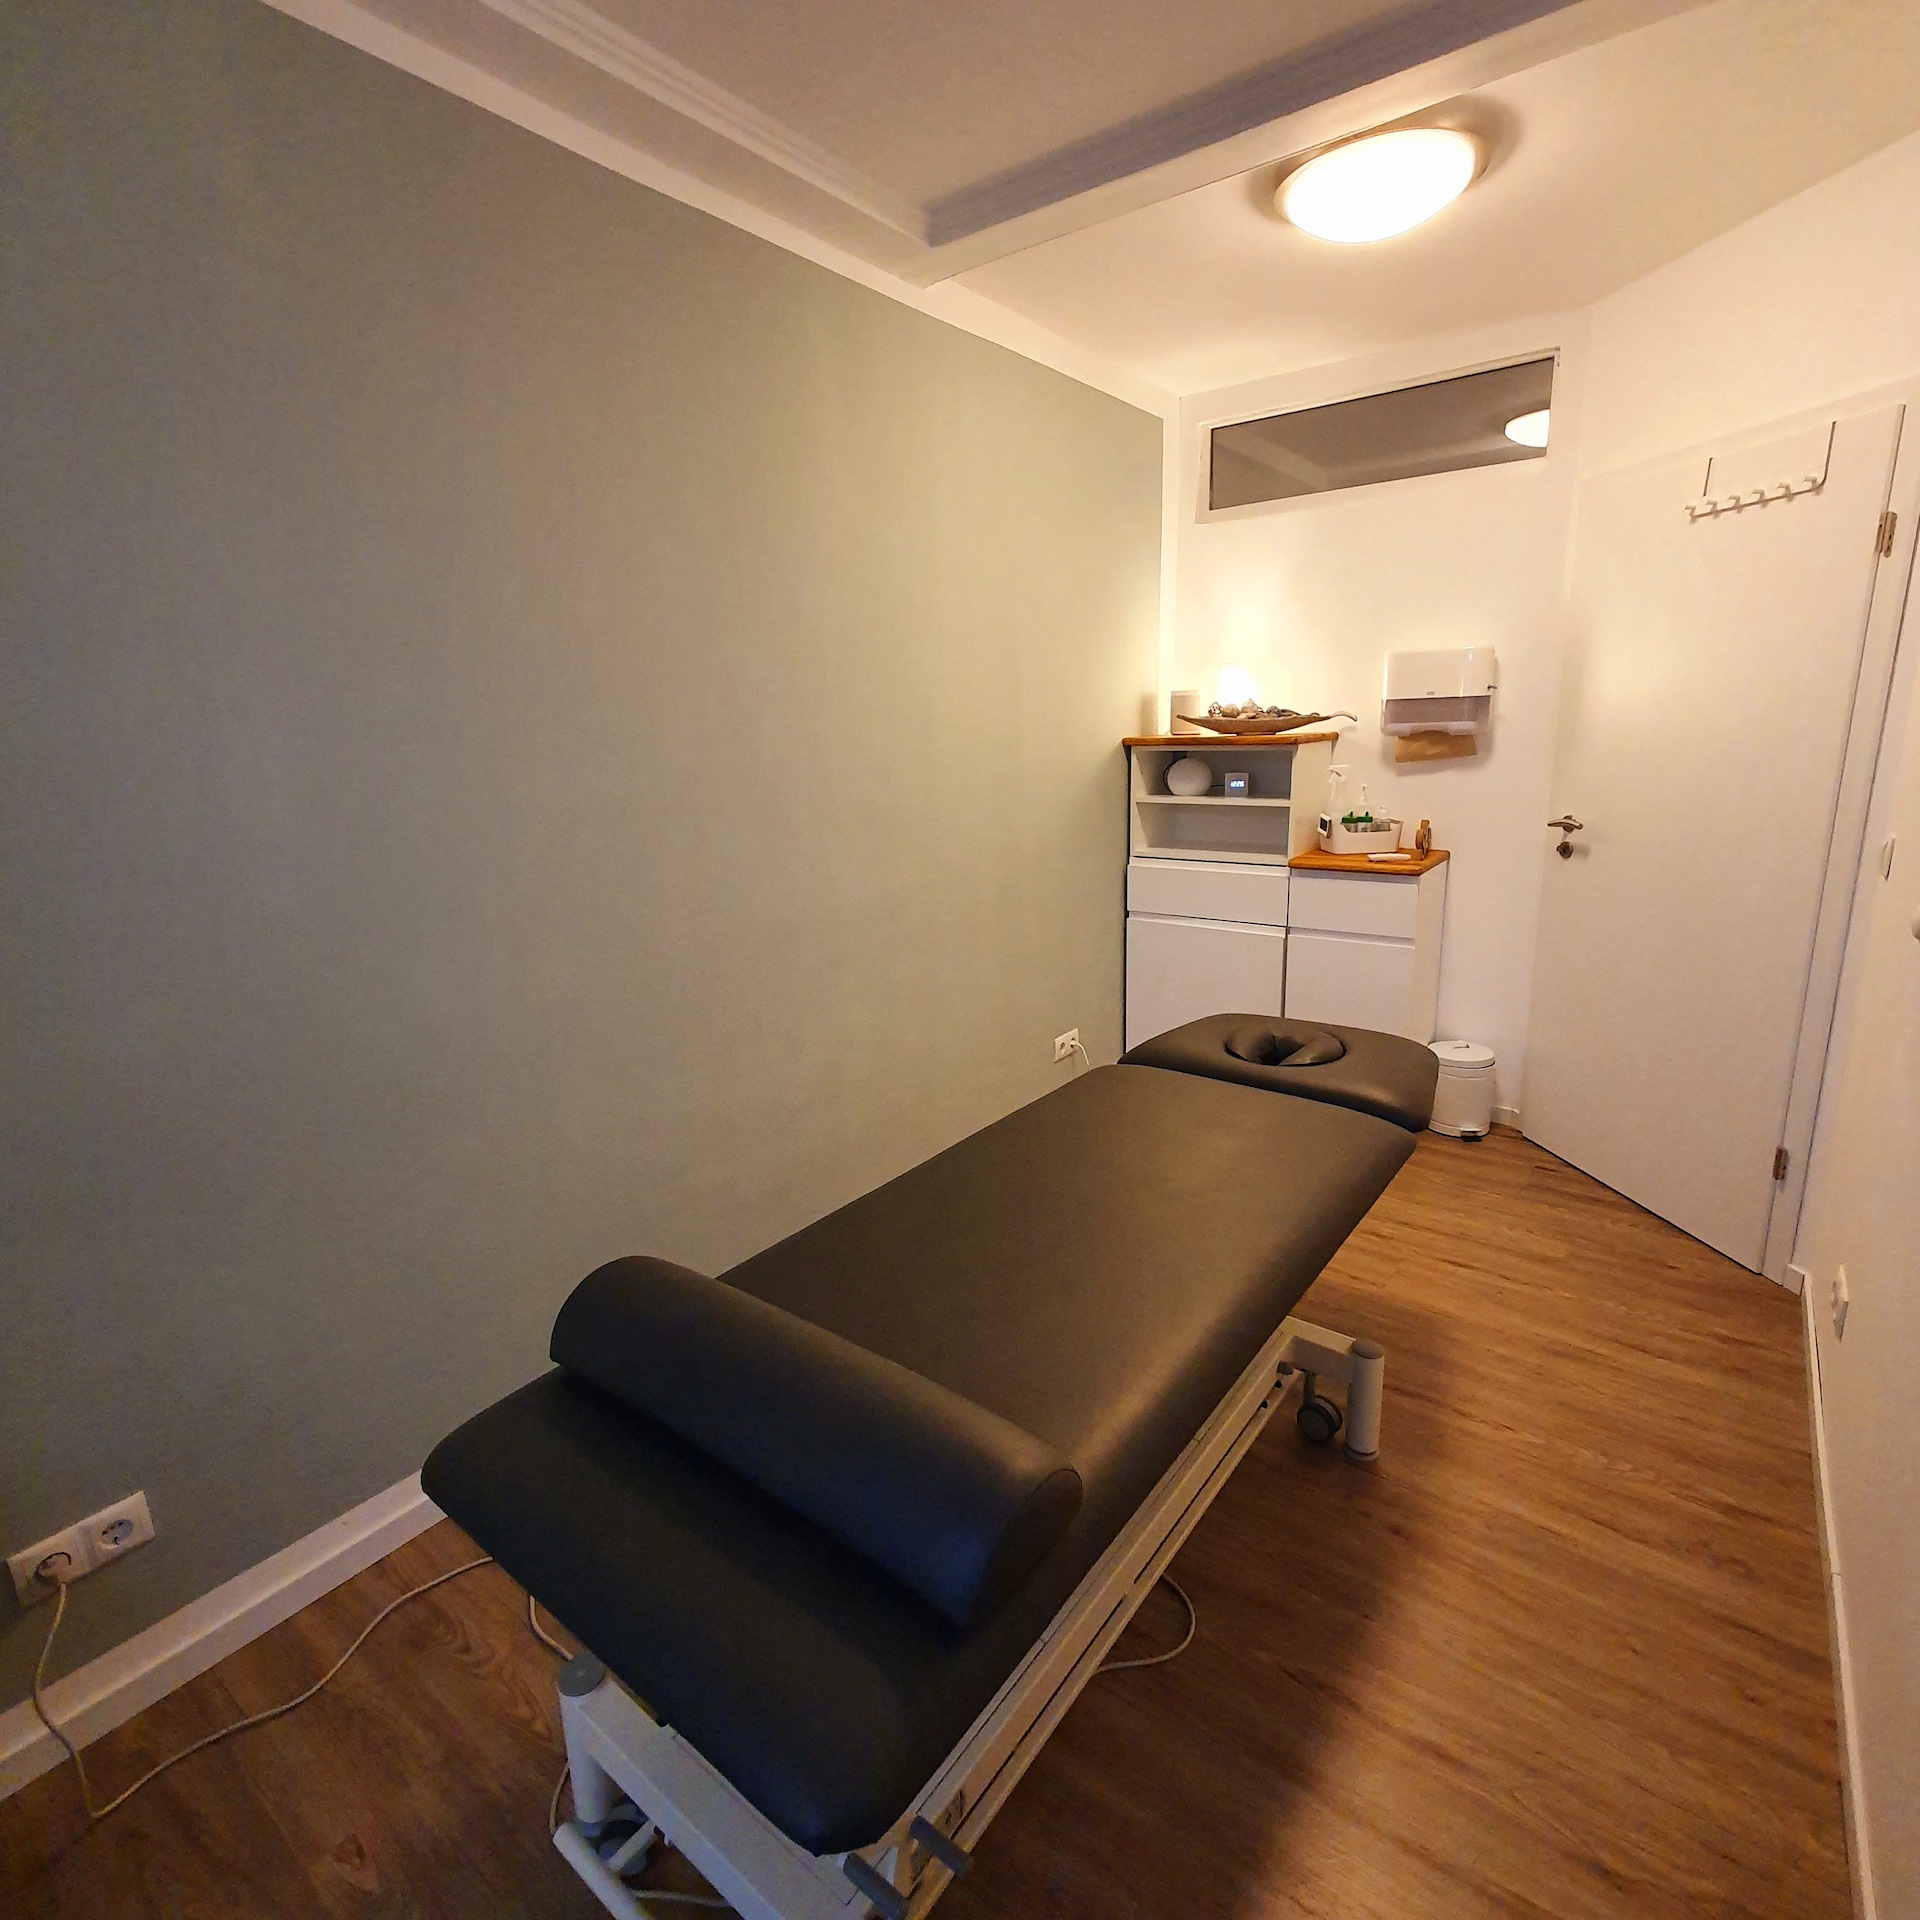 Manuelle Lymphdrainage Bernau